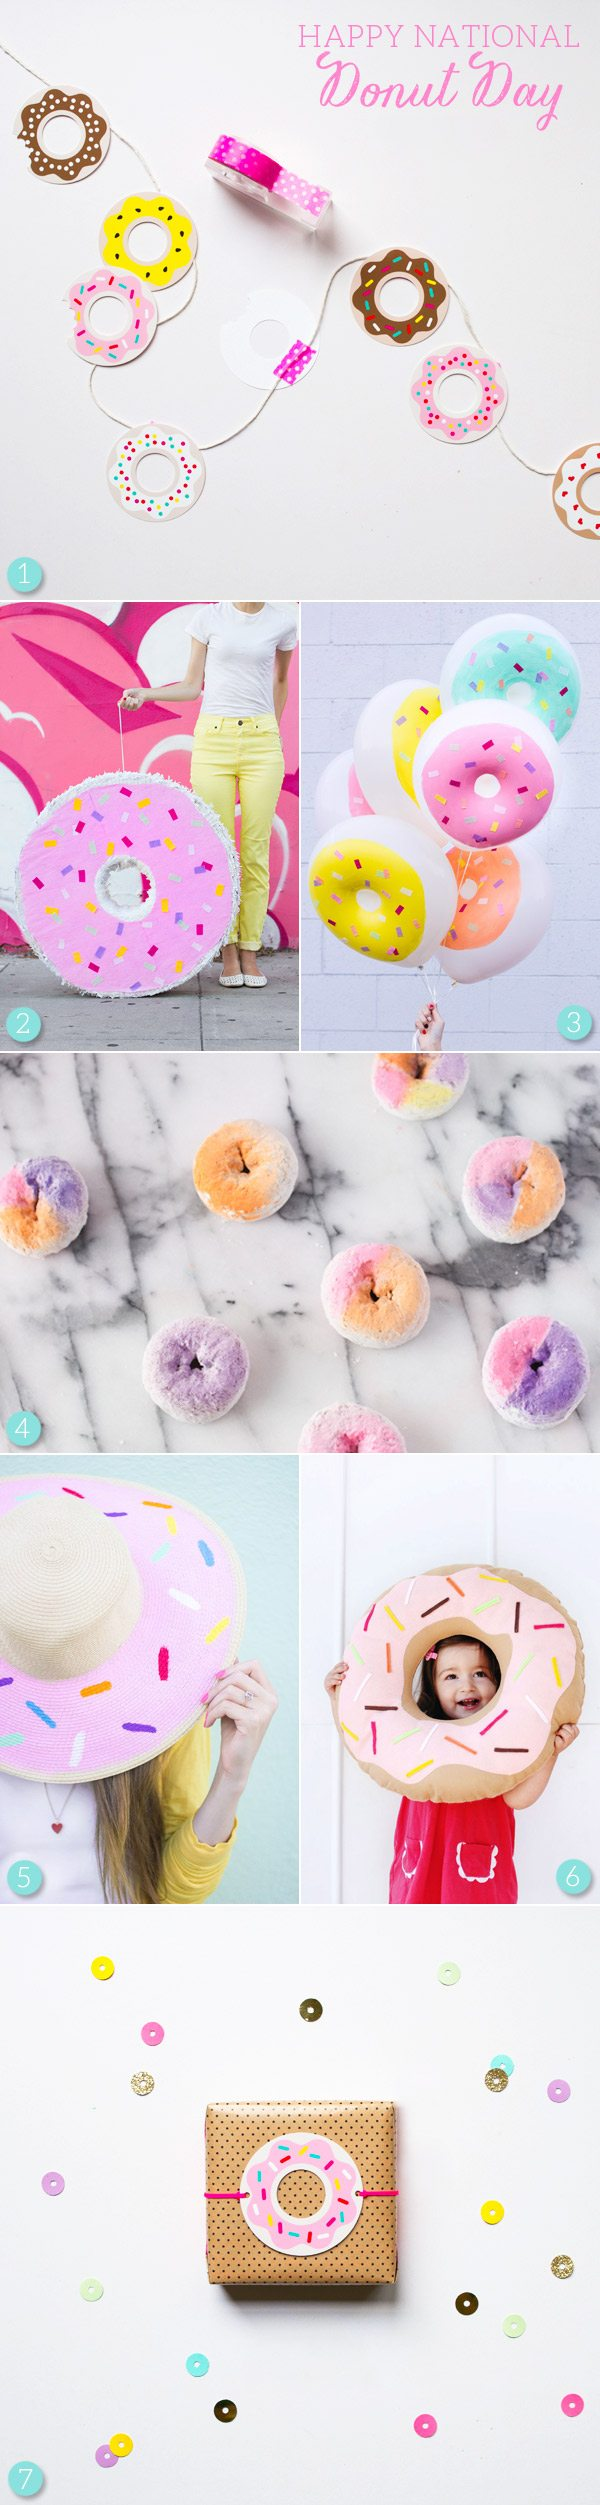 National Donut Day DIY Ideas | The Sweetest Occasion